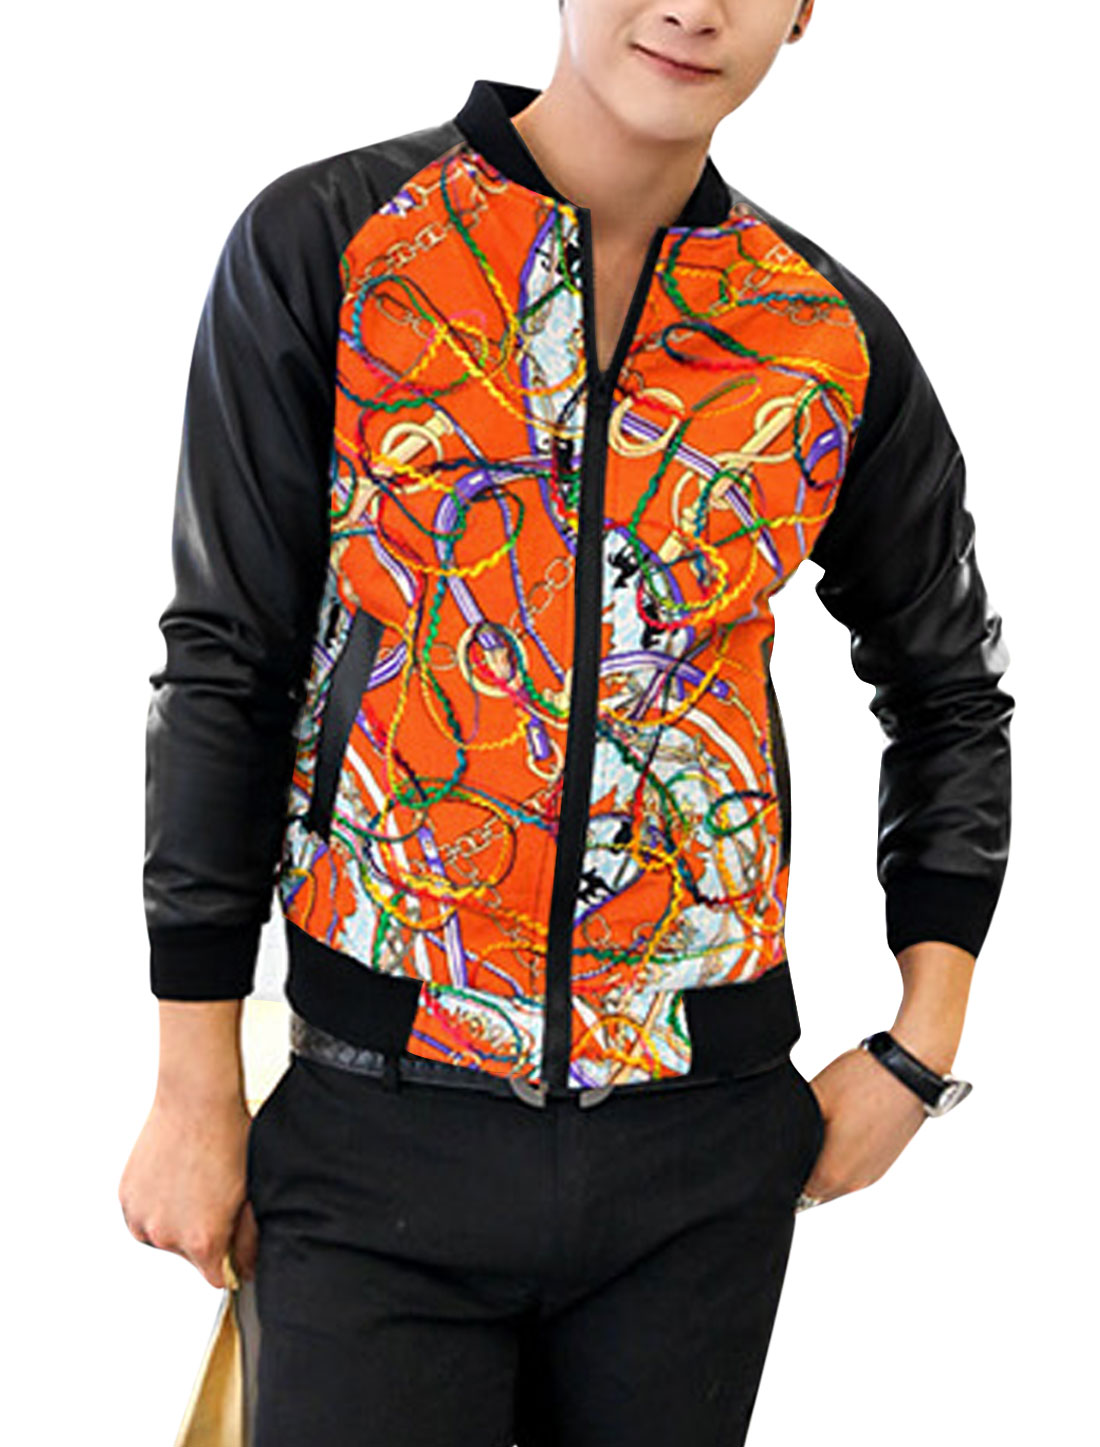 Men Imitation Leather Long Sleeves Contrast Circle Chain Print Jacket Orange M